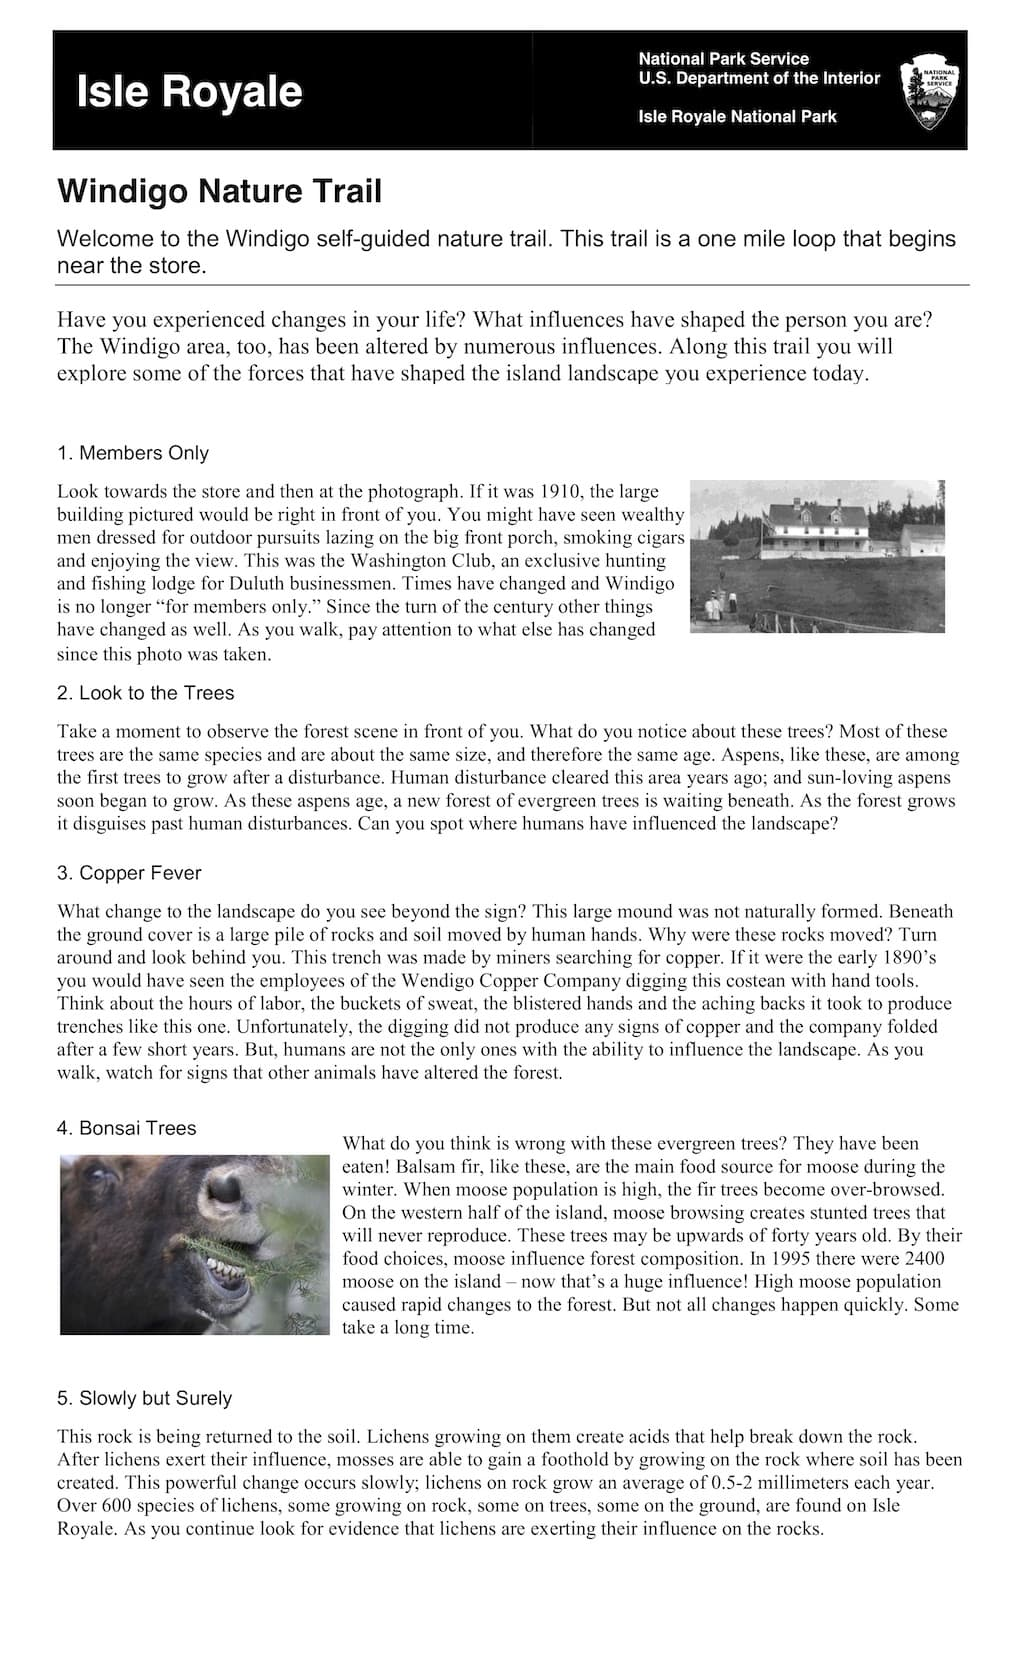 Preview image for Windigo Nature Trail Guide resource